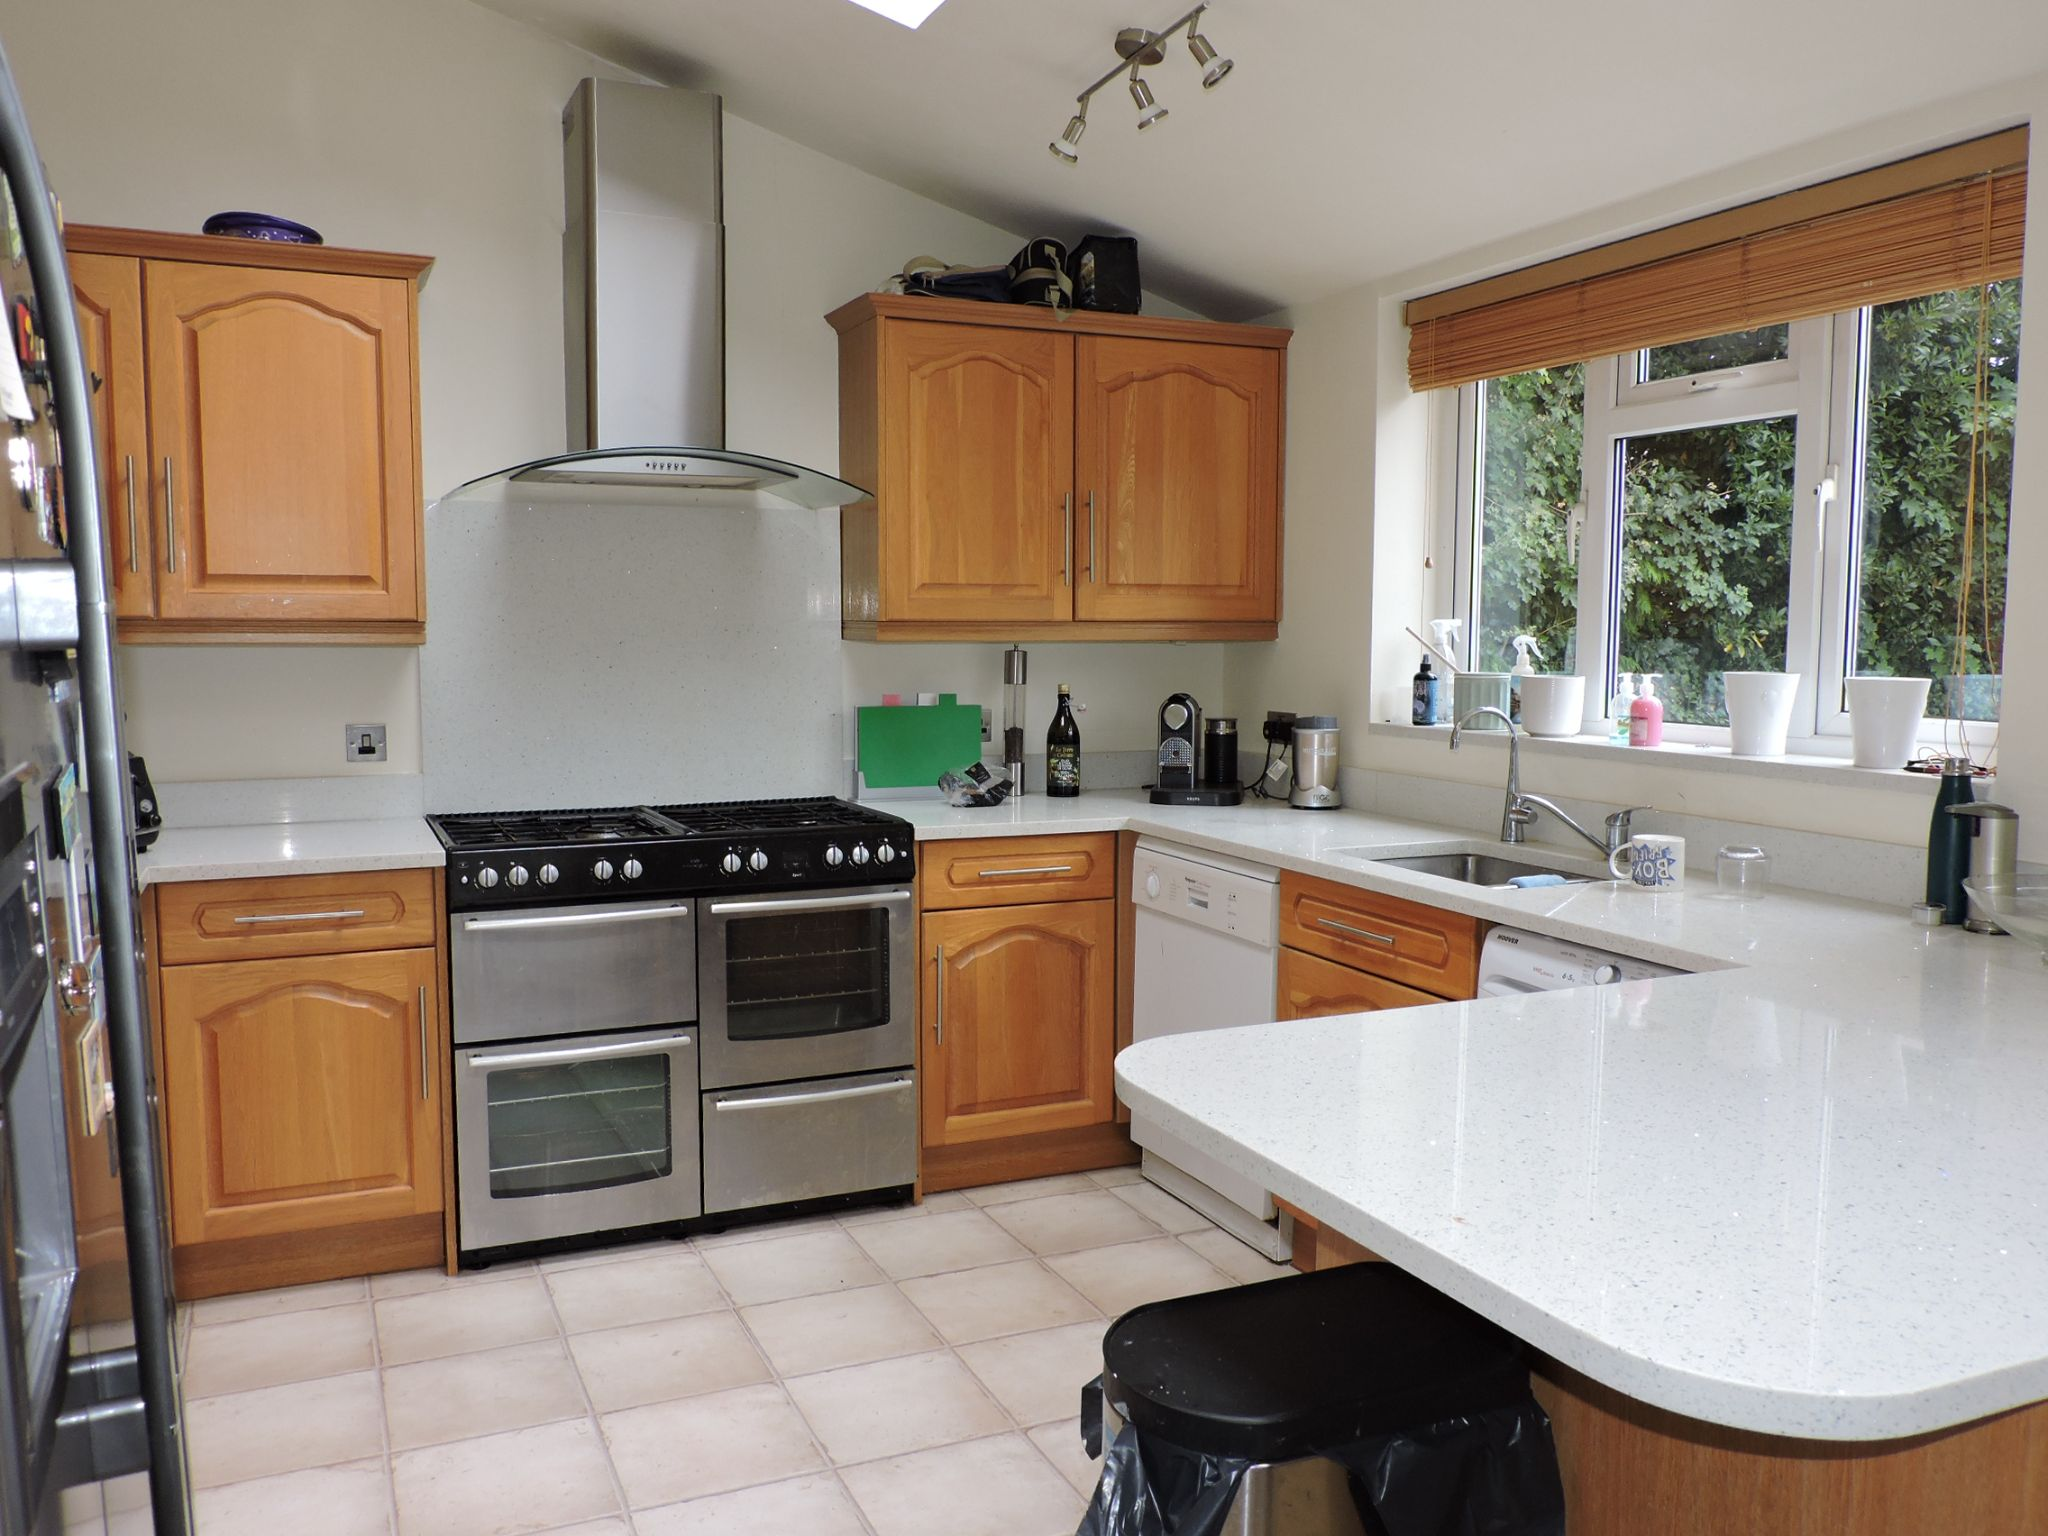 3 bedroom semi-detached house For Sale in Surbiton - Photograph 6